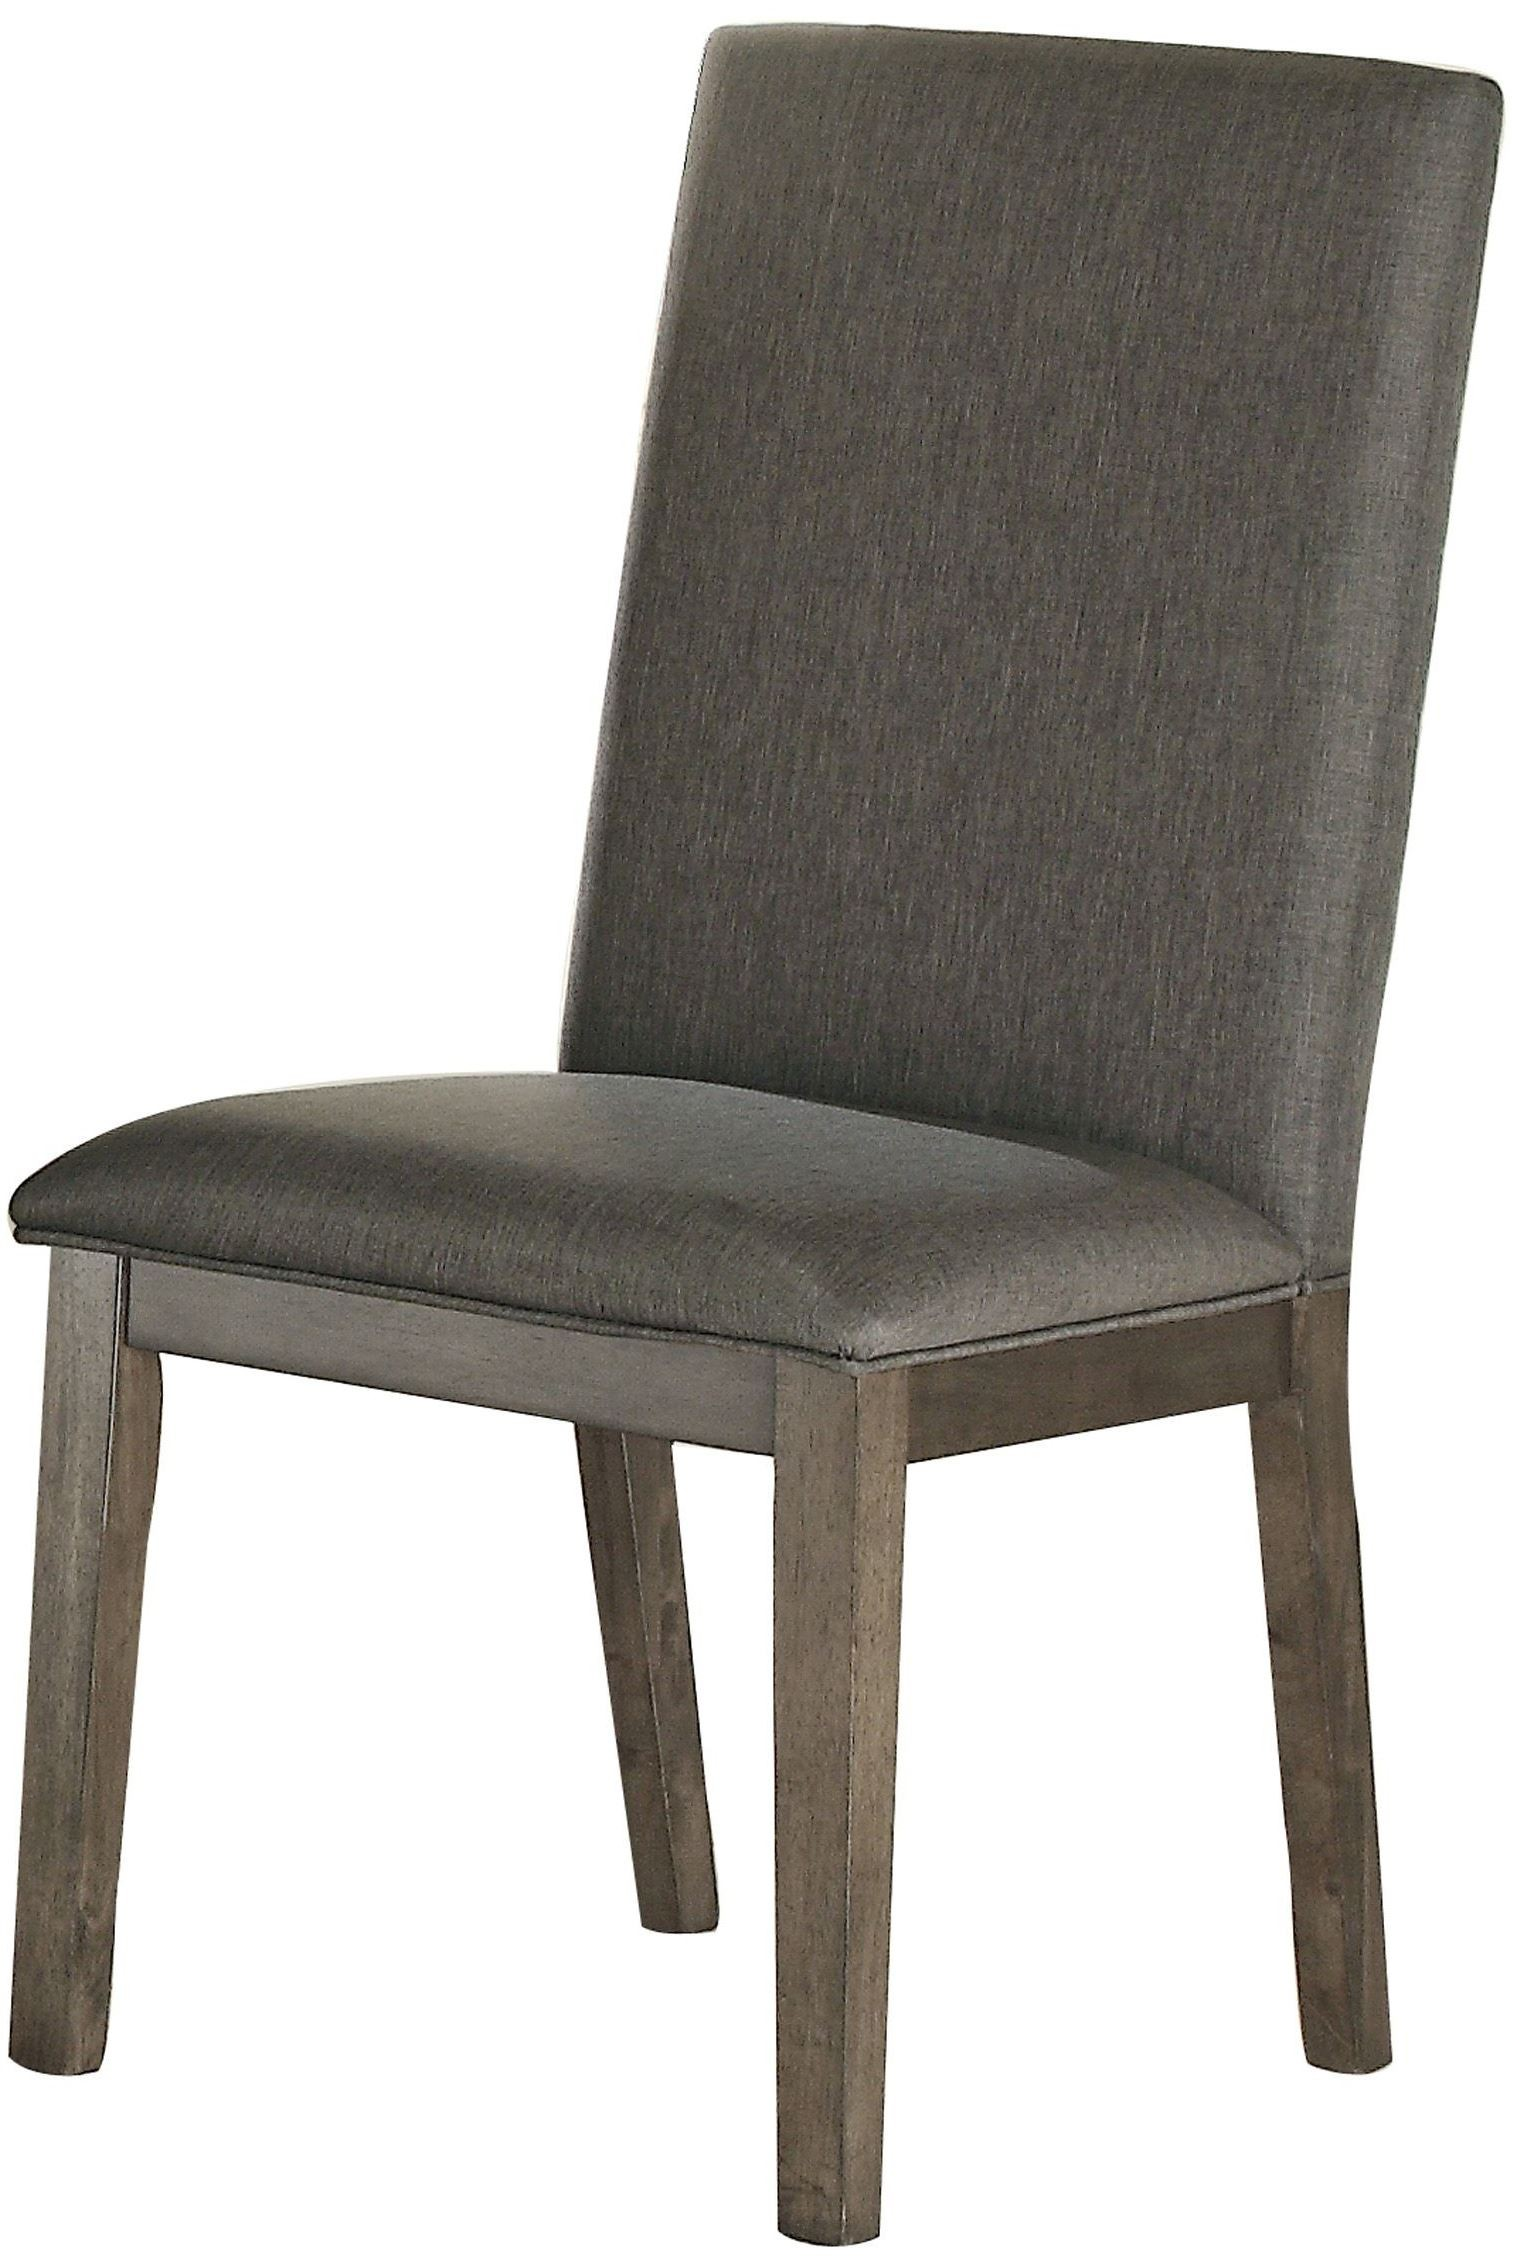 Fulton Side Chair From Homelegance 5169s Coleman Furniture